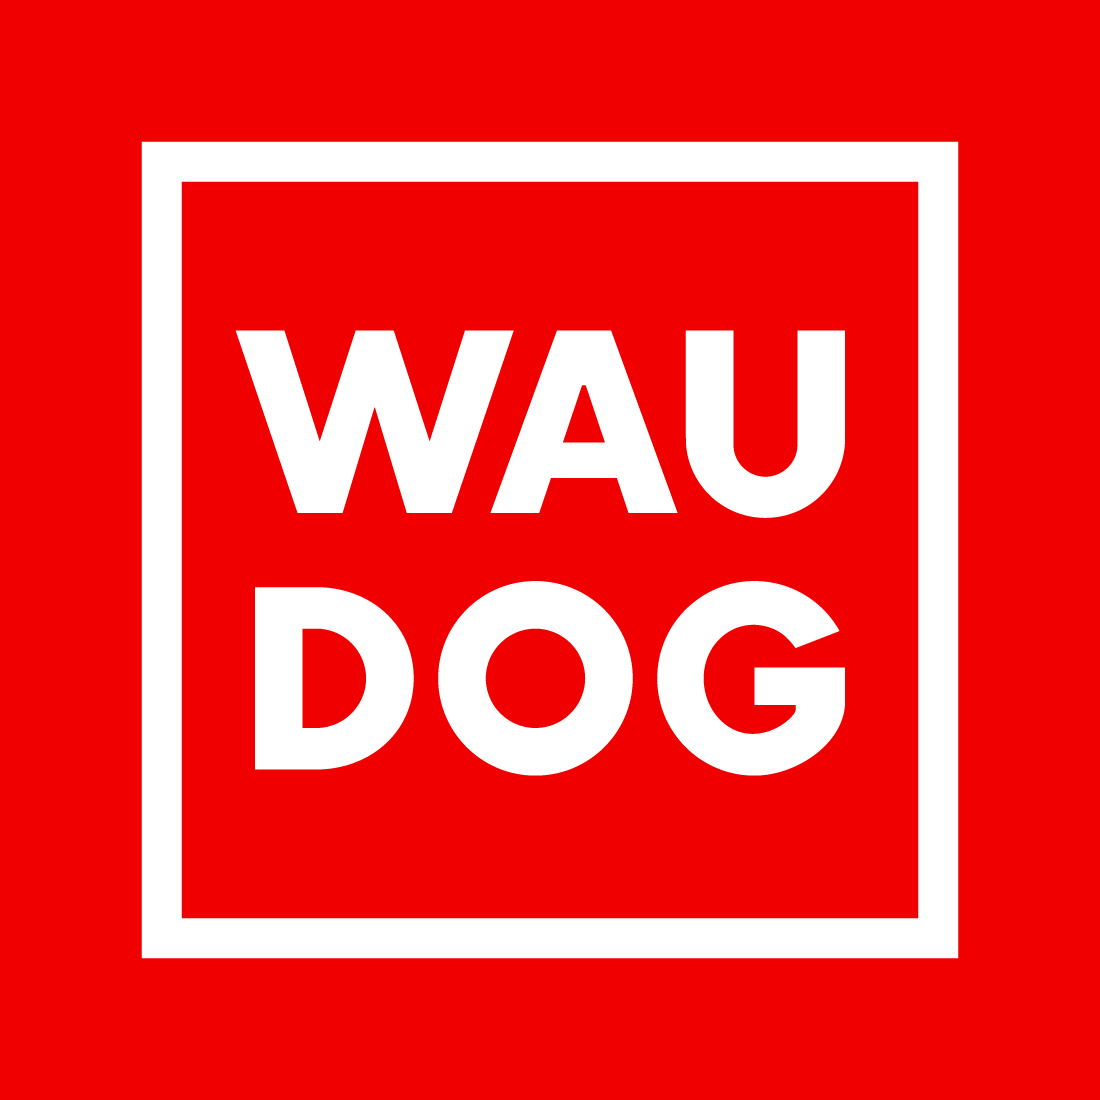 WAUDOG an endless assortment of vibrant leather nylon waterproof pet accessories to make any pet and parent happy